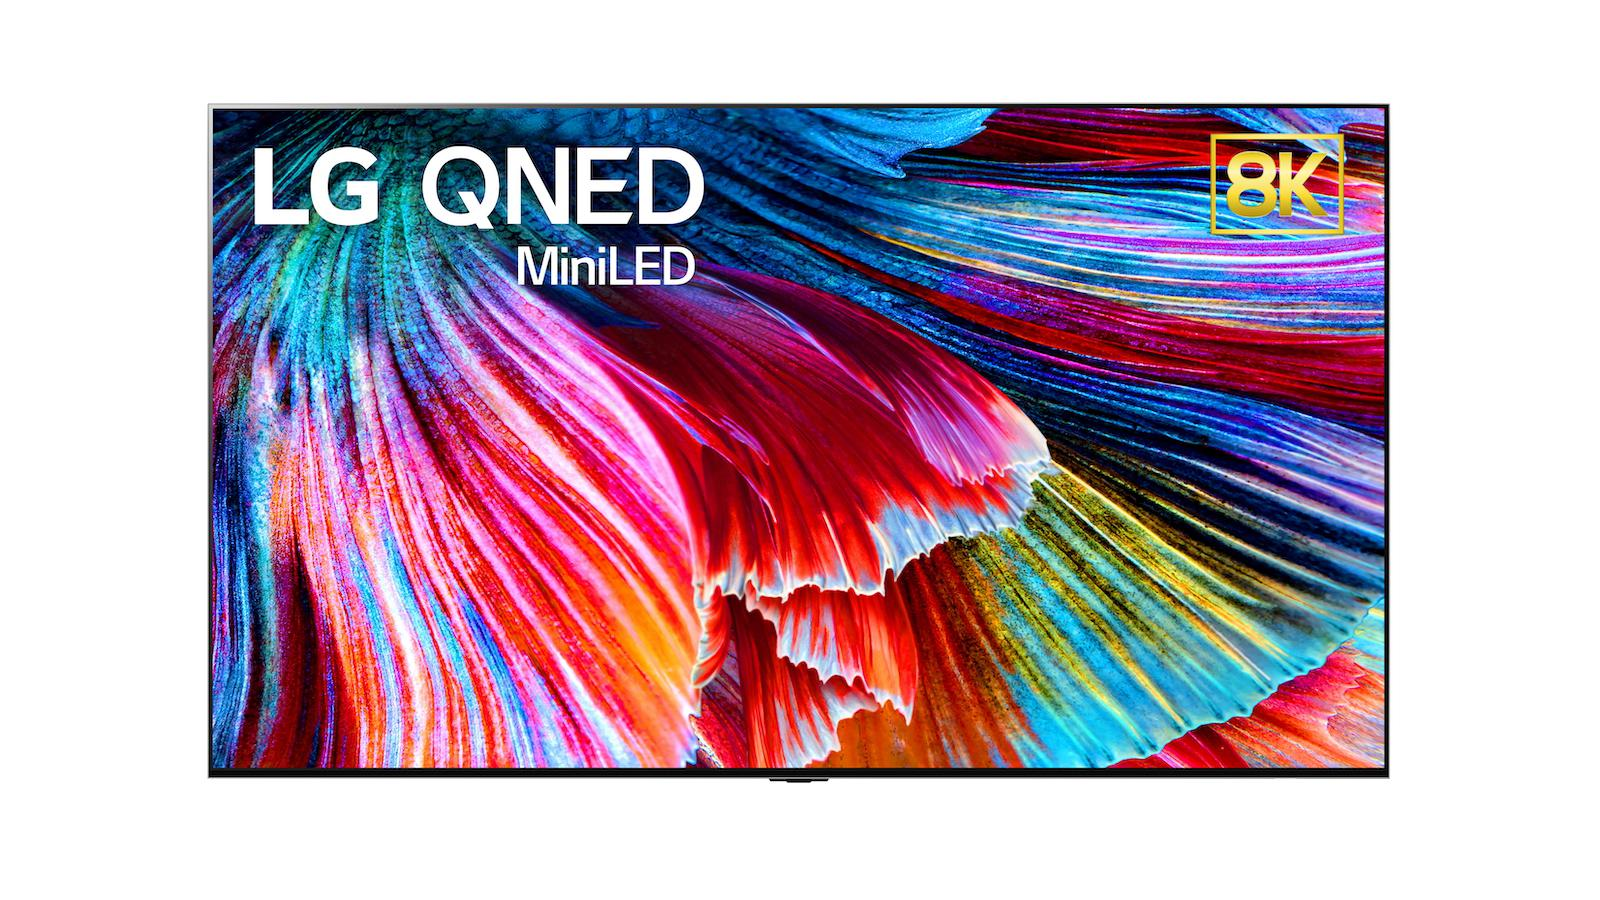 LG Mini LED QNED 86-inch 8K TV